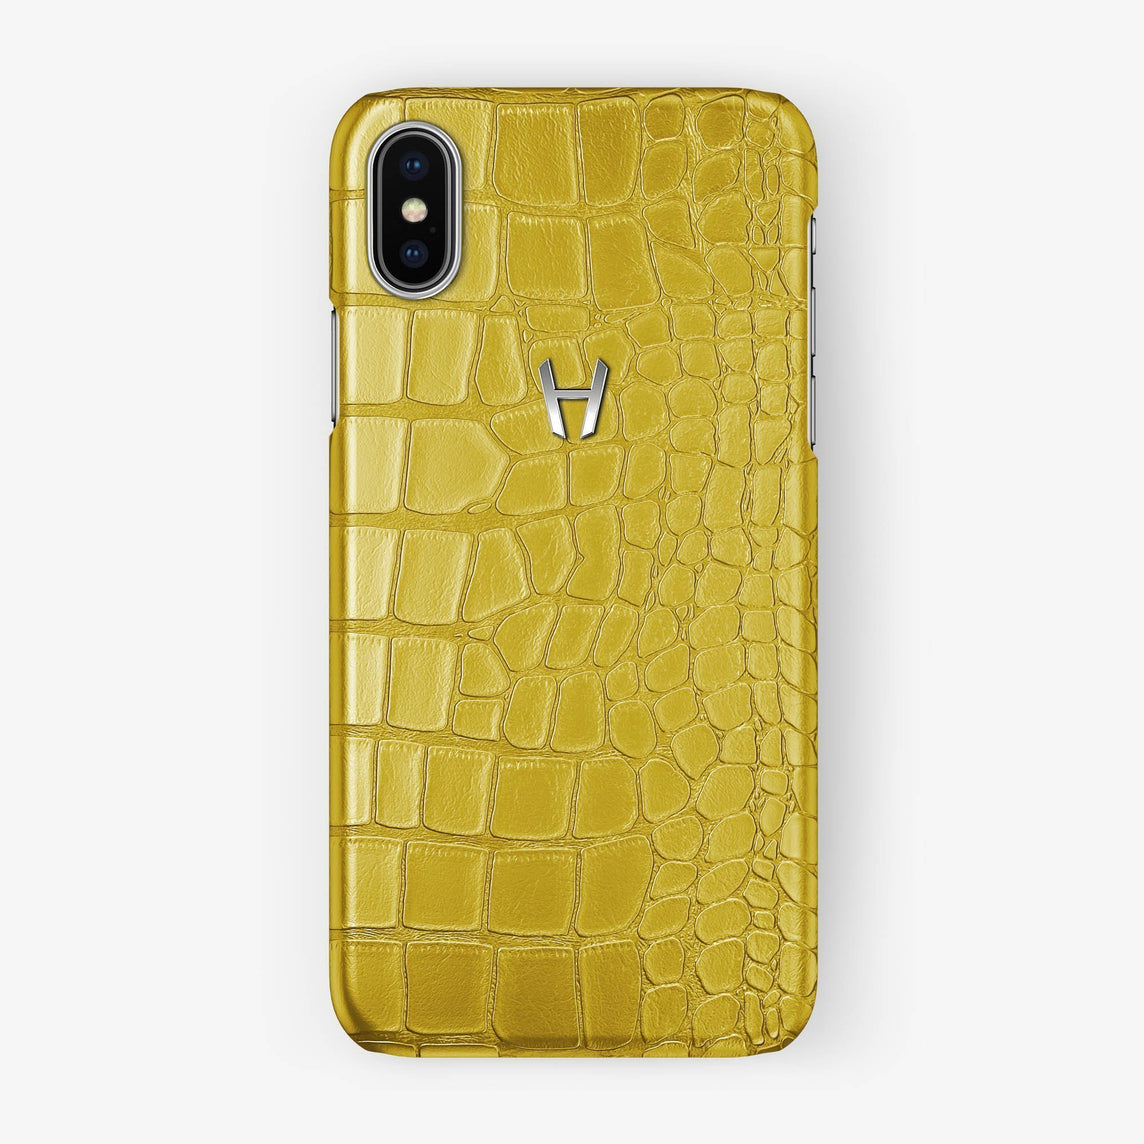 Alligator [iPhone Case] [model:iphone-xsmax-case] [colour:yellow] [finishing:stainless-steel] - Hadoro